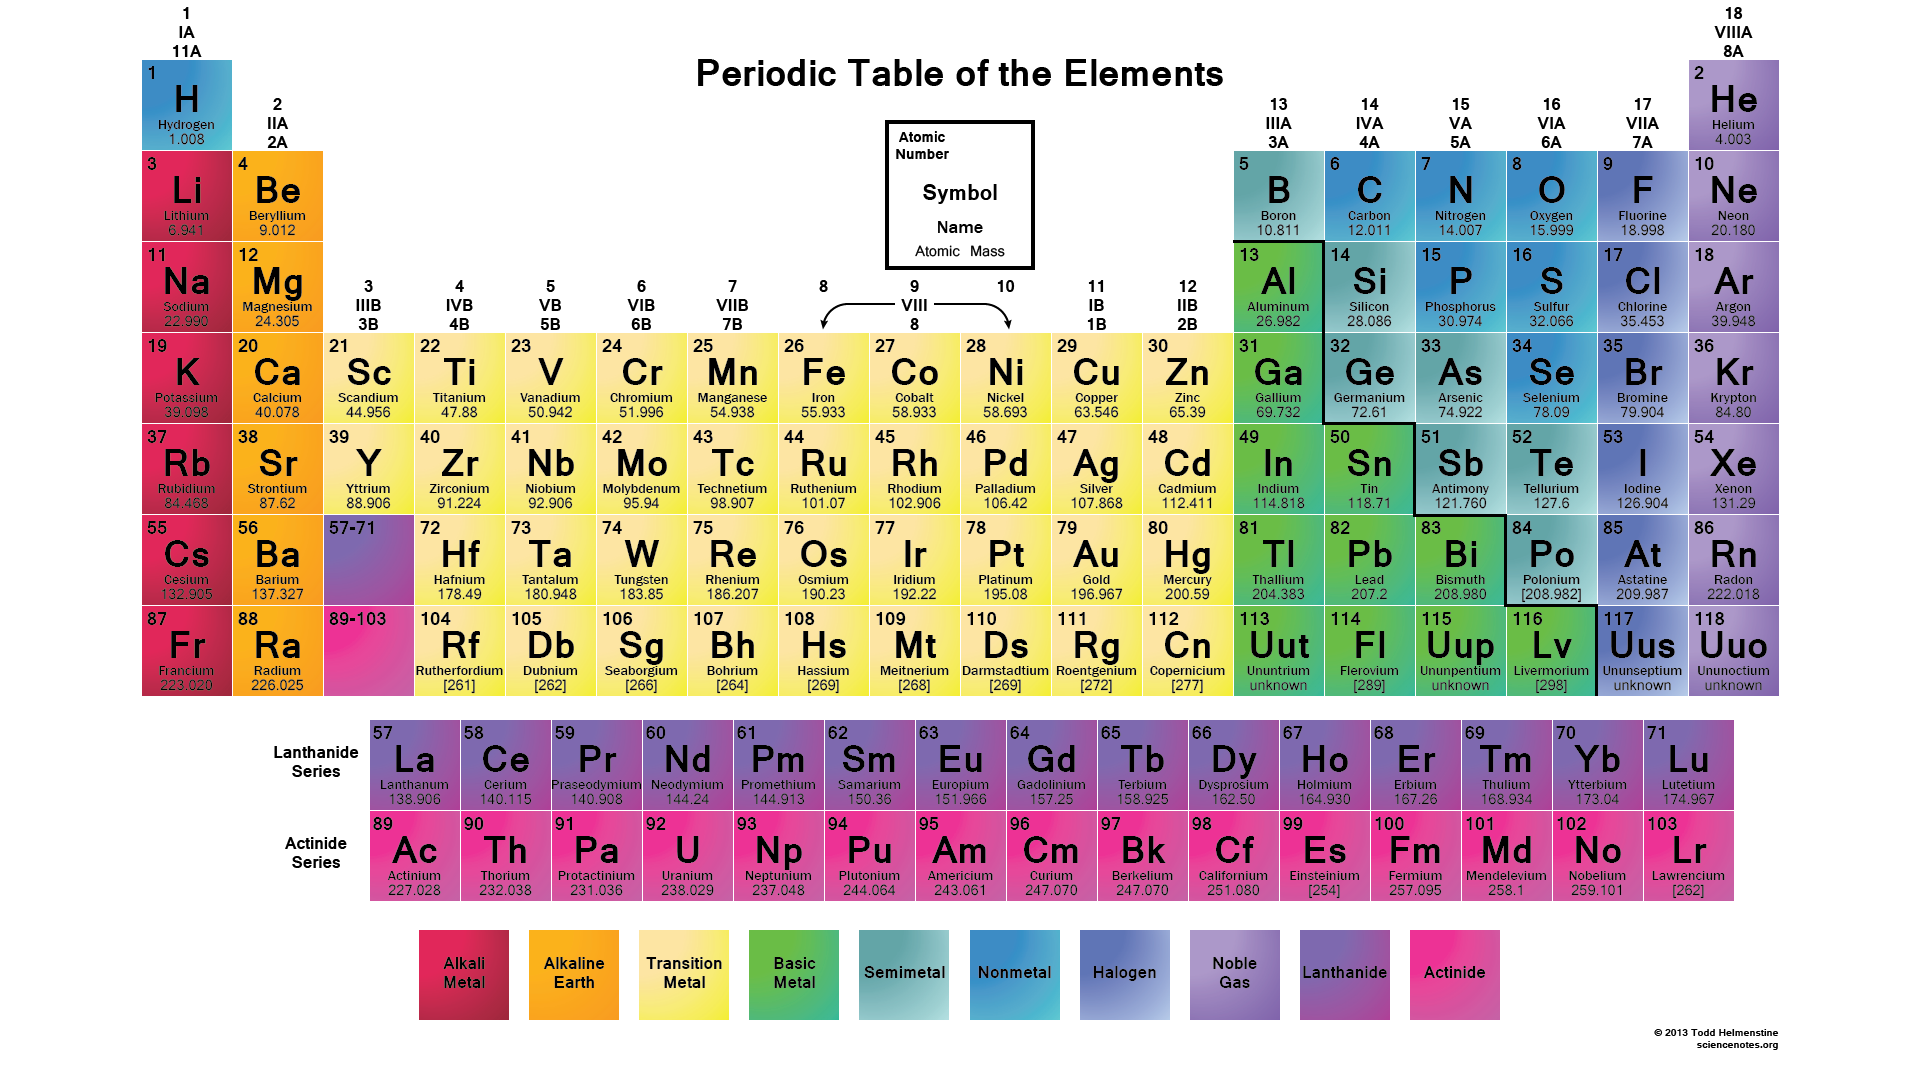 Periodic tables of the elements in american englishmichael canov amer11g urtaz Images